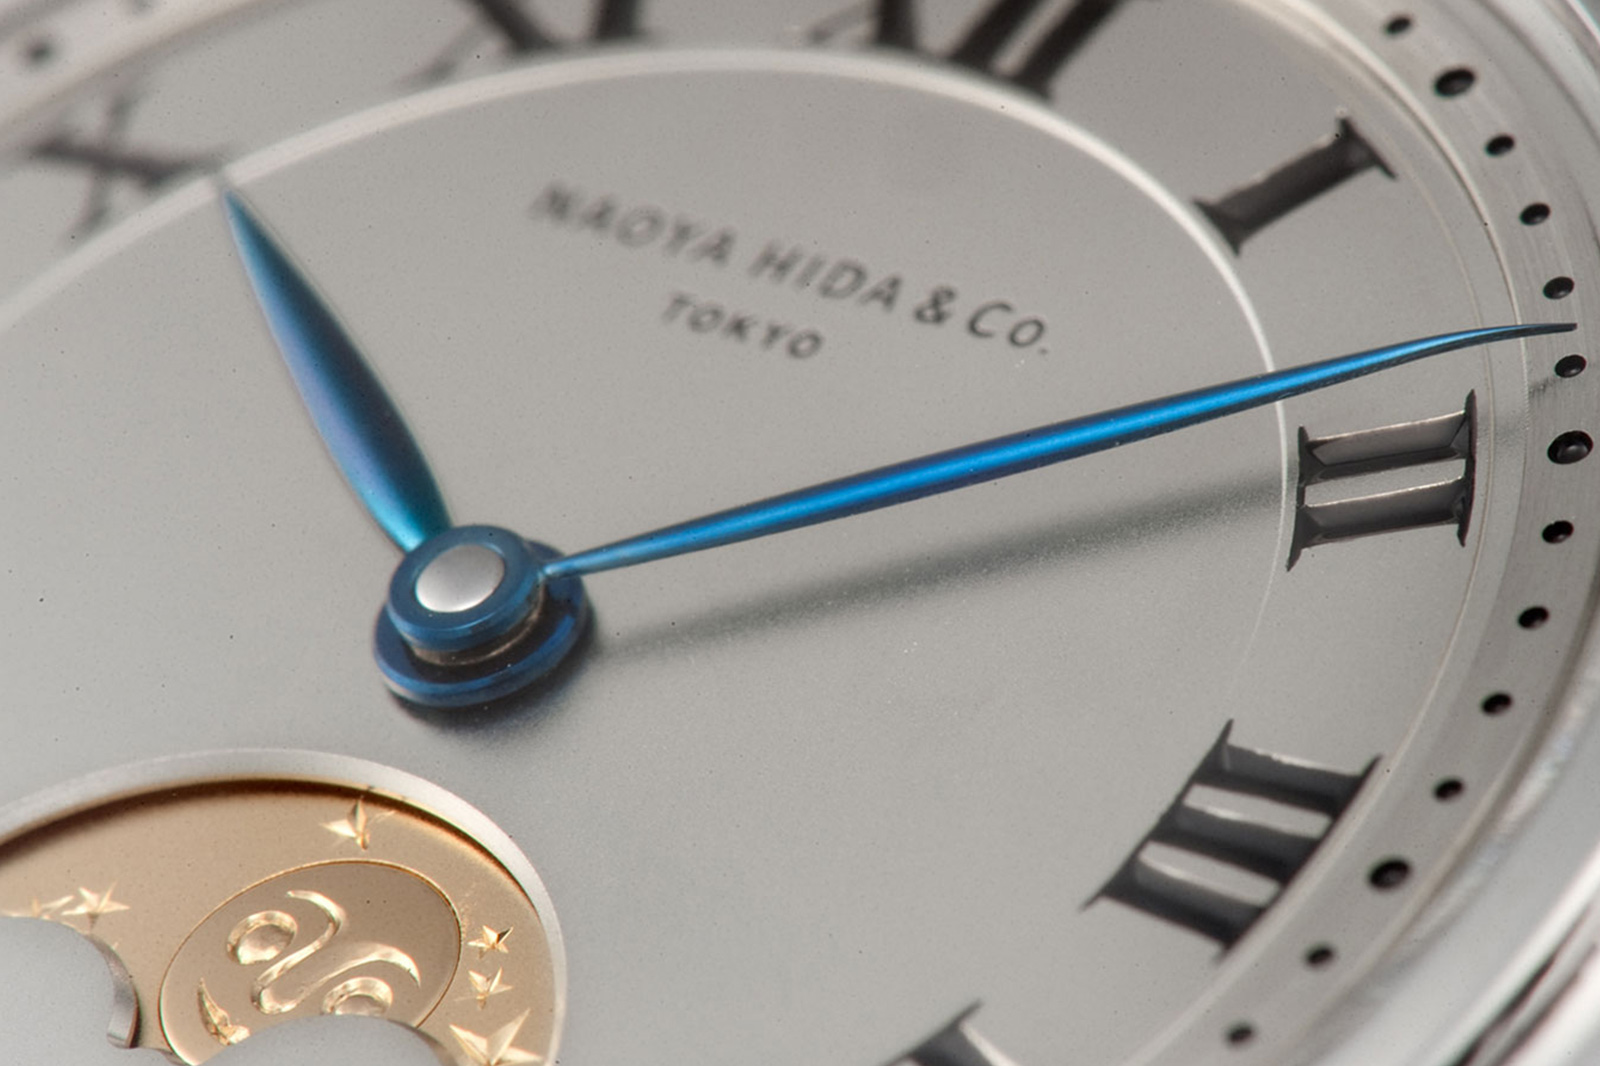 Naoya Hida & Co. Type 3A Moon Phase